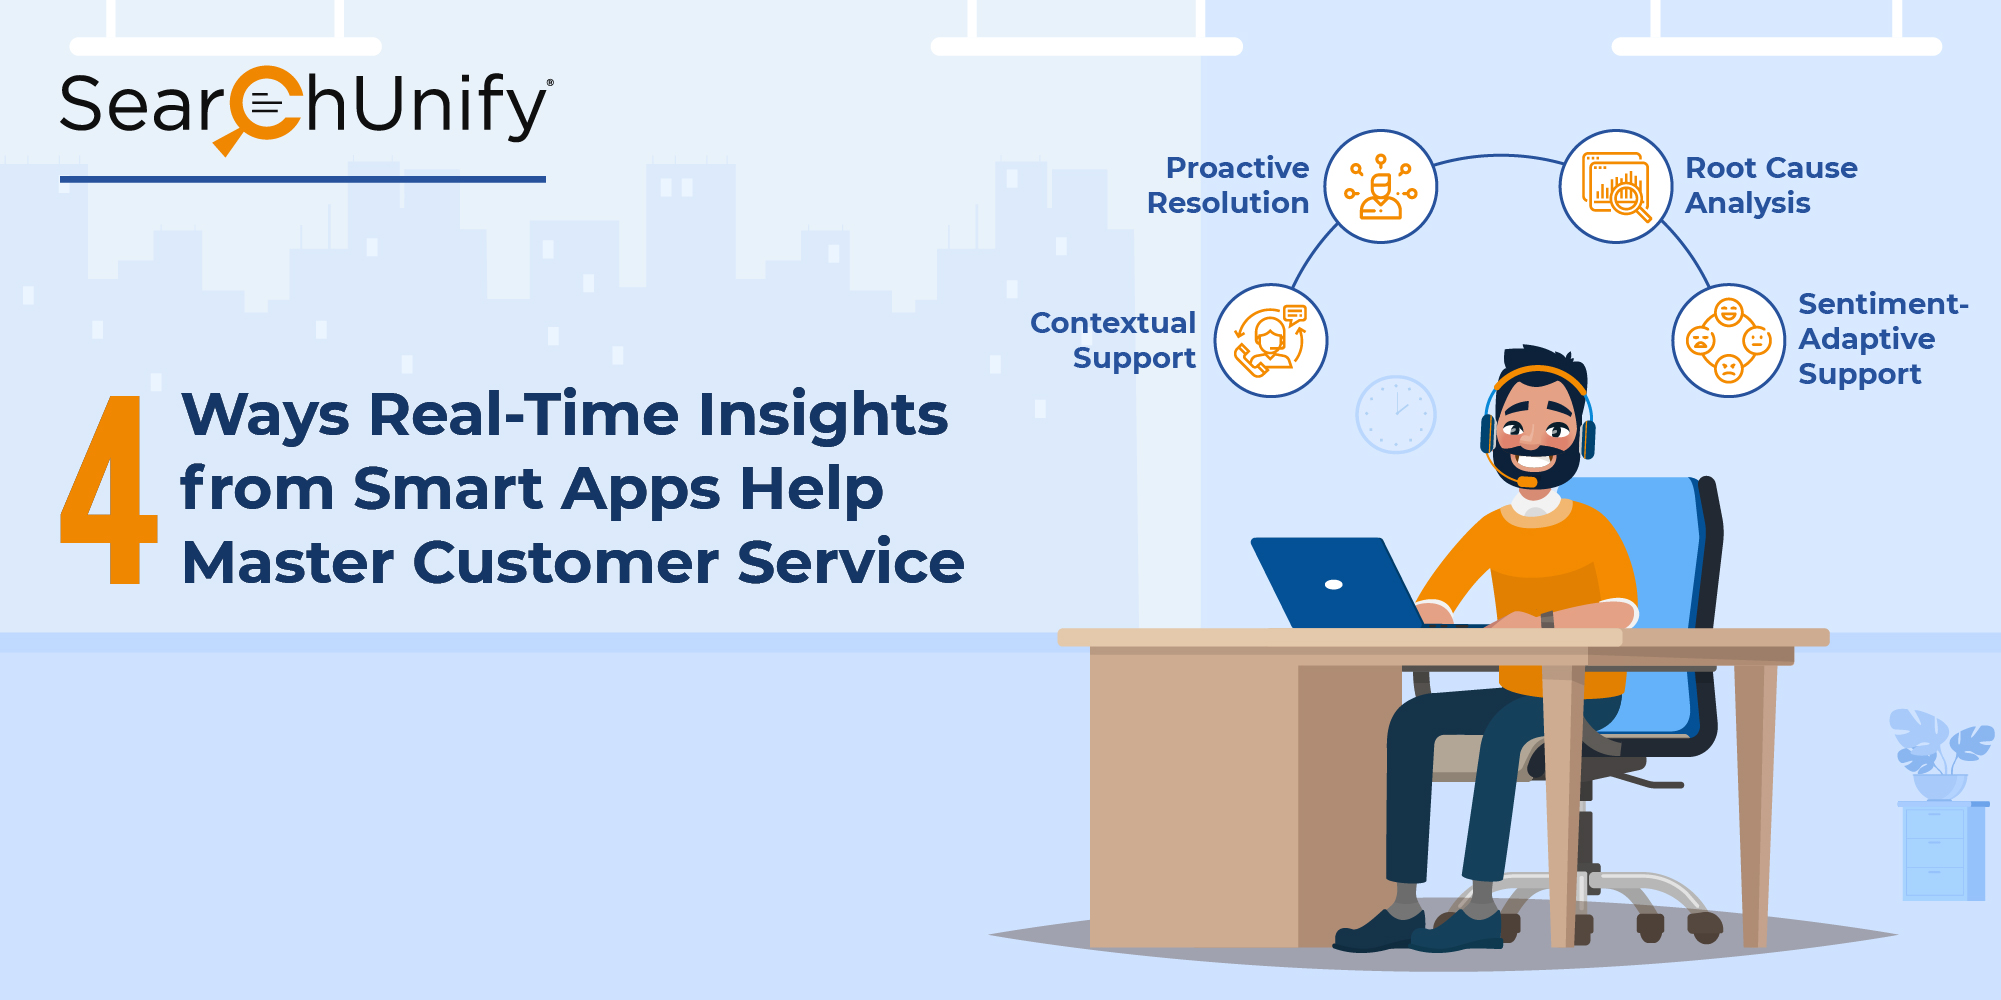 4 Ways Real-Time Insights from Smart Apps Help Master Customer Service